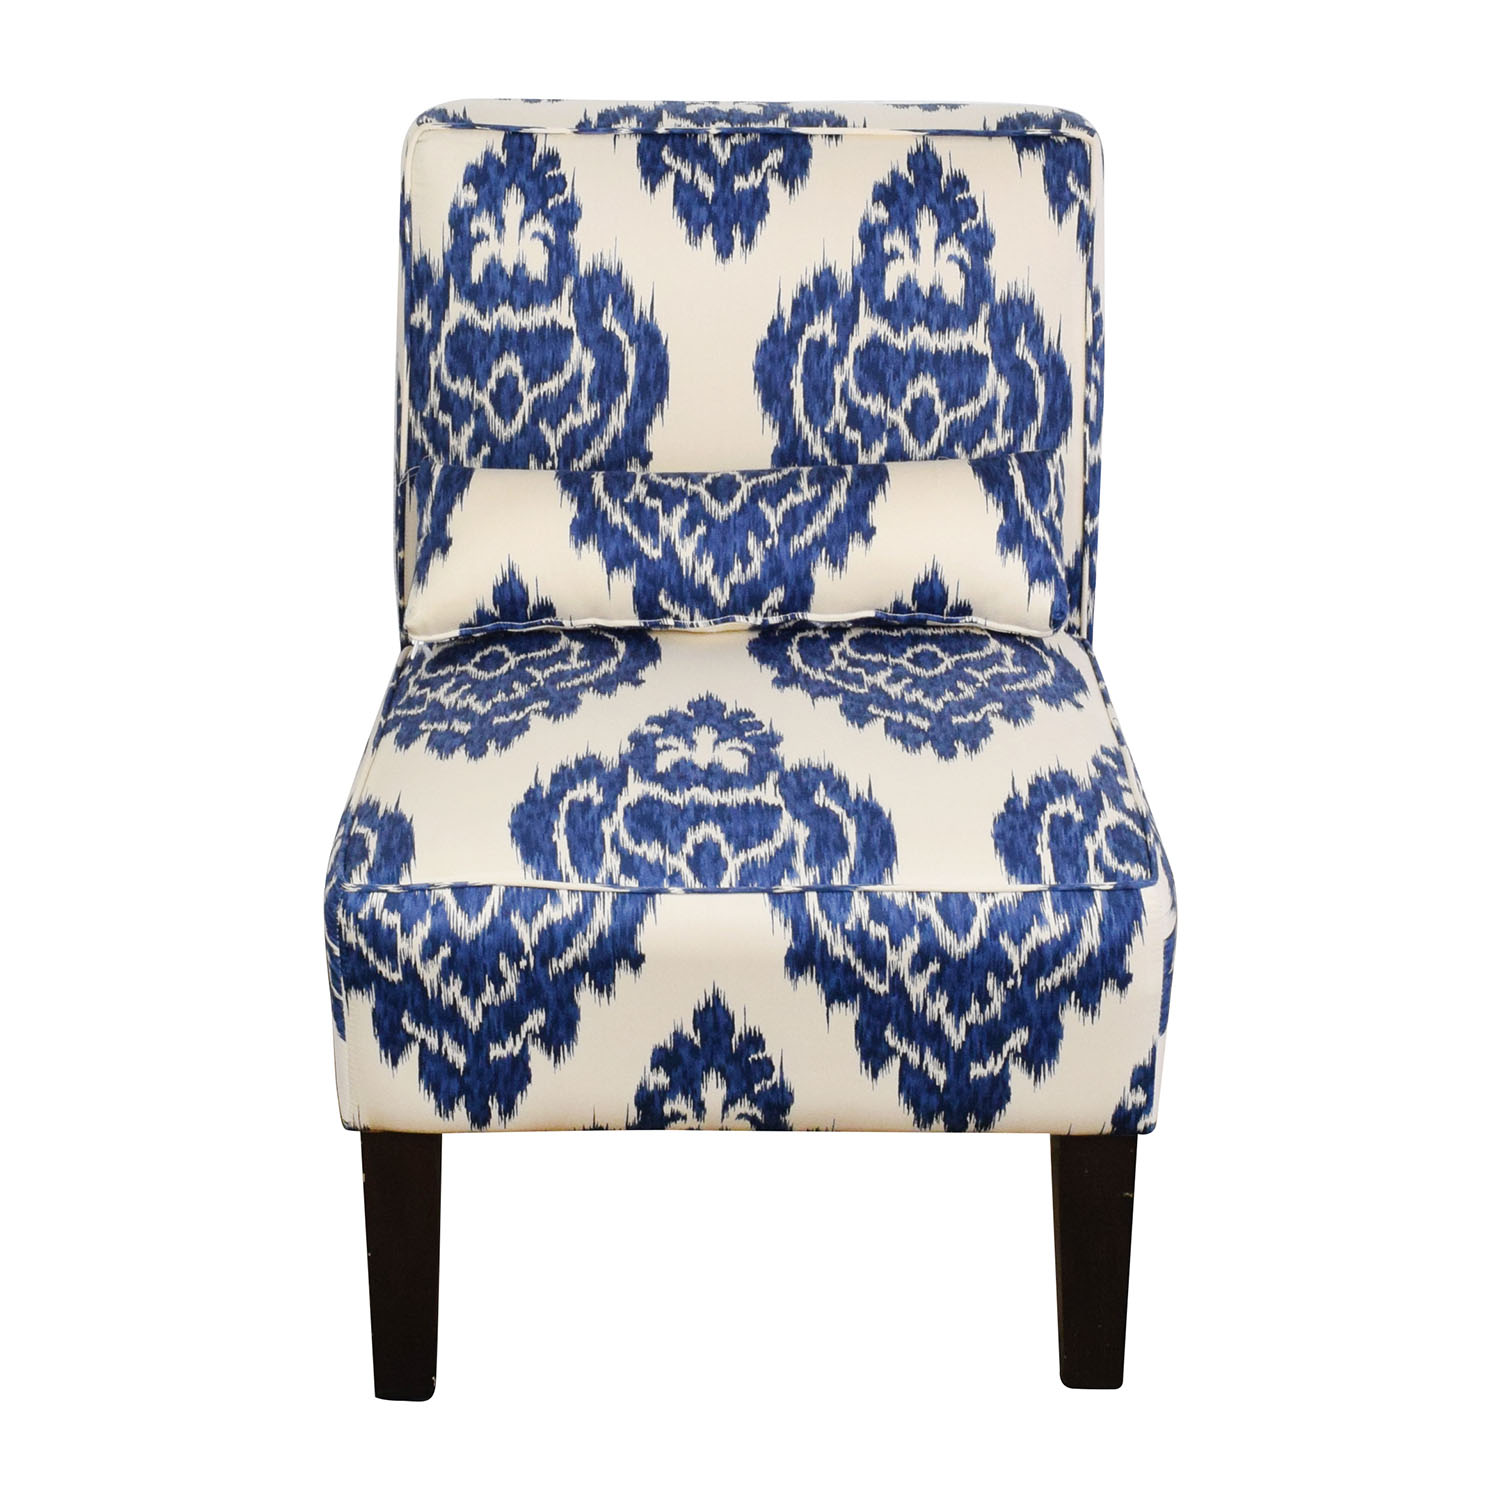 Marvelous 52 Off Overstock Overstock Blue And White Accent Chair Chairs Machost Co Dining Chair Design Ideas Machostcouk